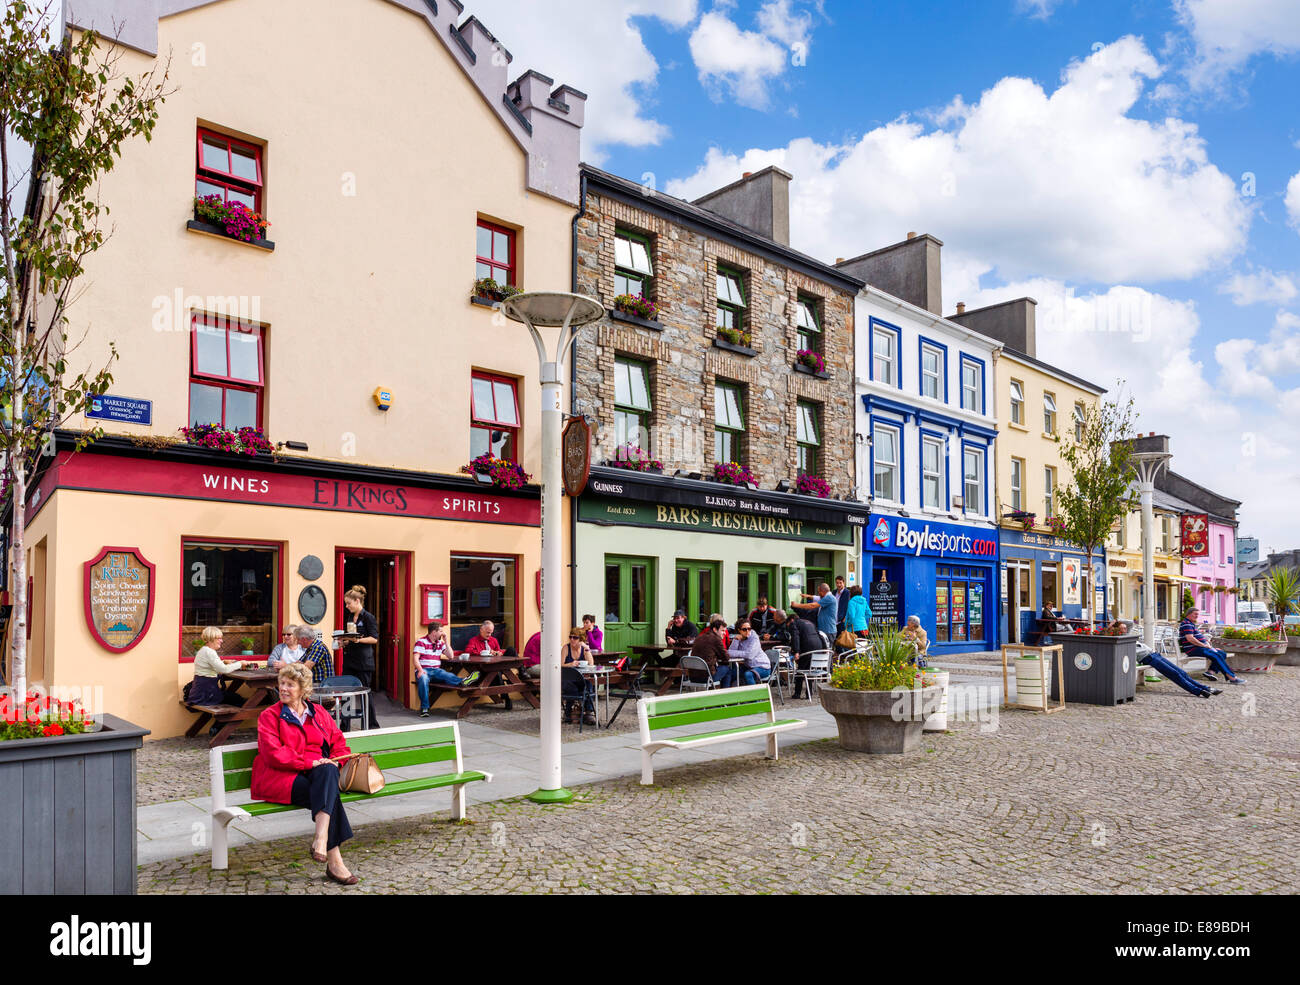 Shops and pubs on Market Square in the town centre, Clifden, Connemara, County Galway, Republic of Ireland - Stock Image